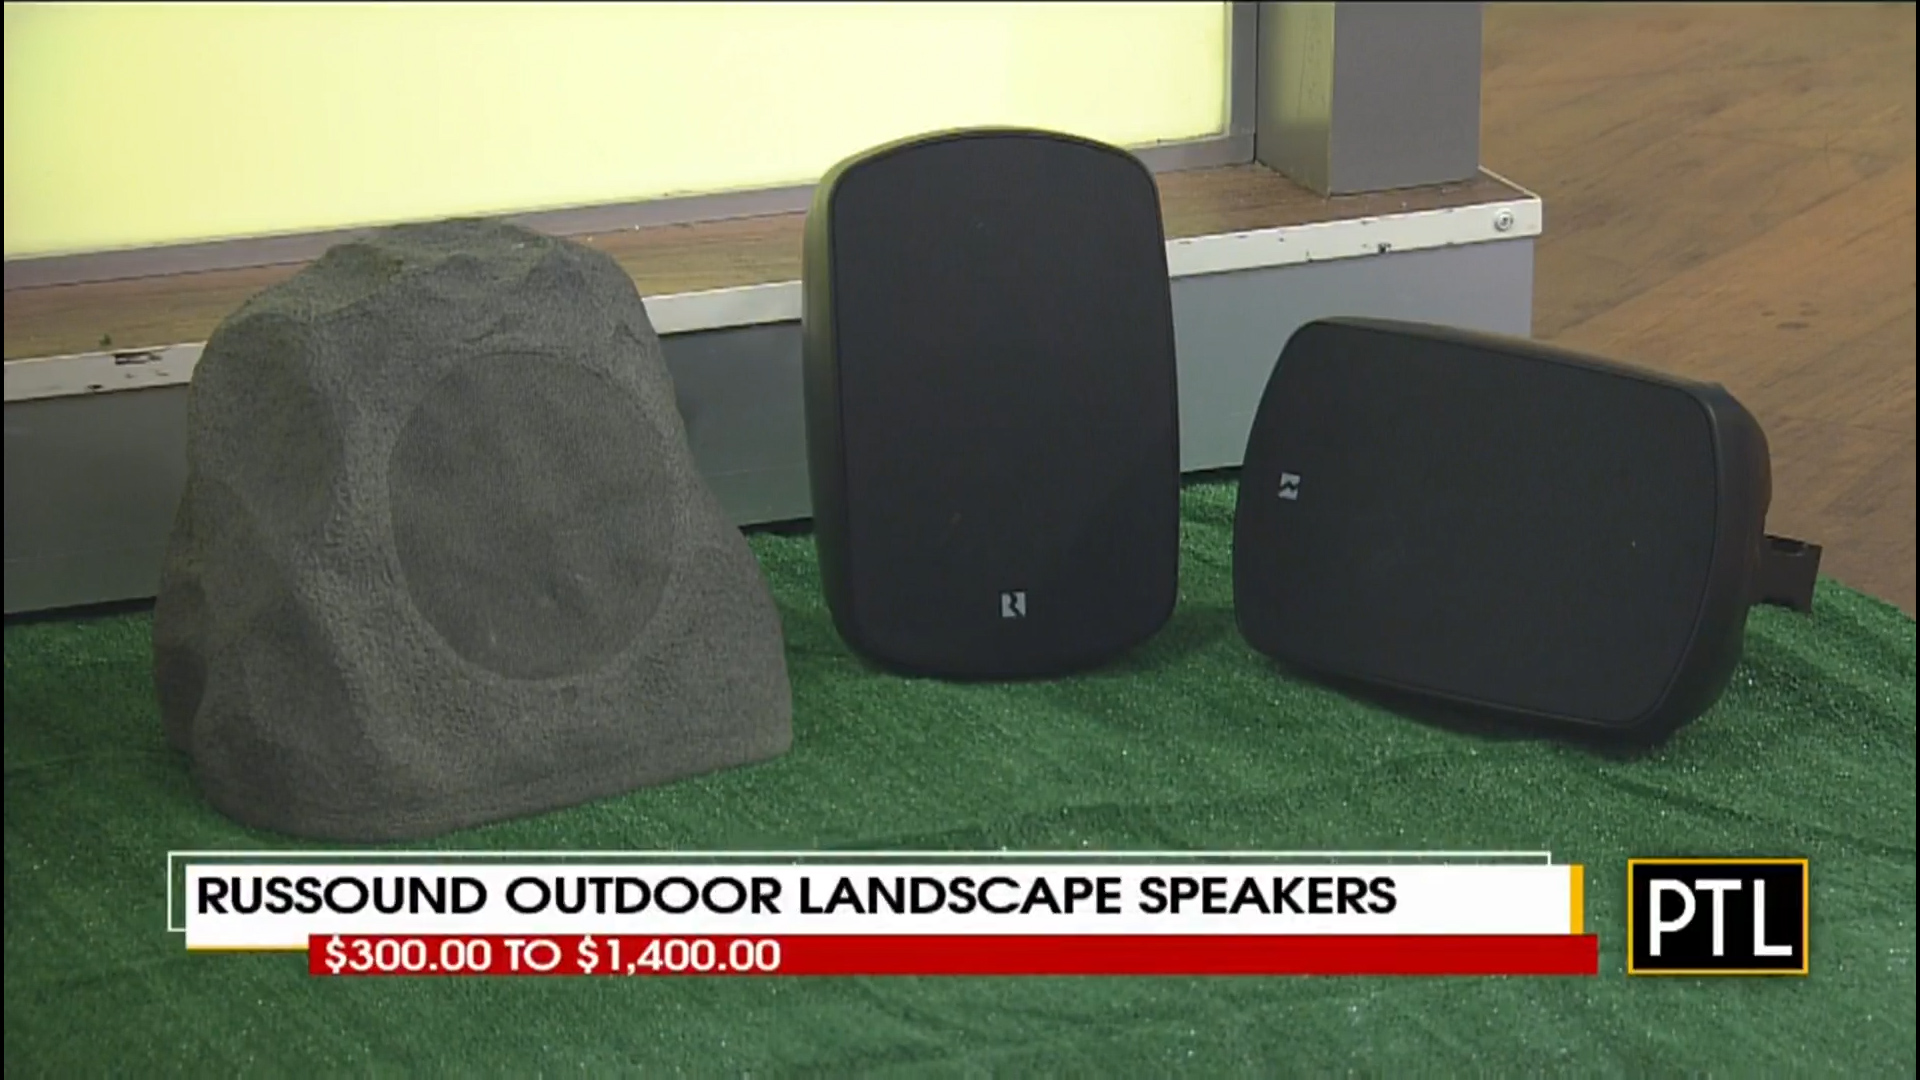 RUSSOUND OUTDOOR LANDSCAPE SPEAKERS - $300.00 to $1400.00Shop Now